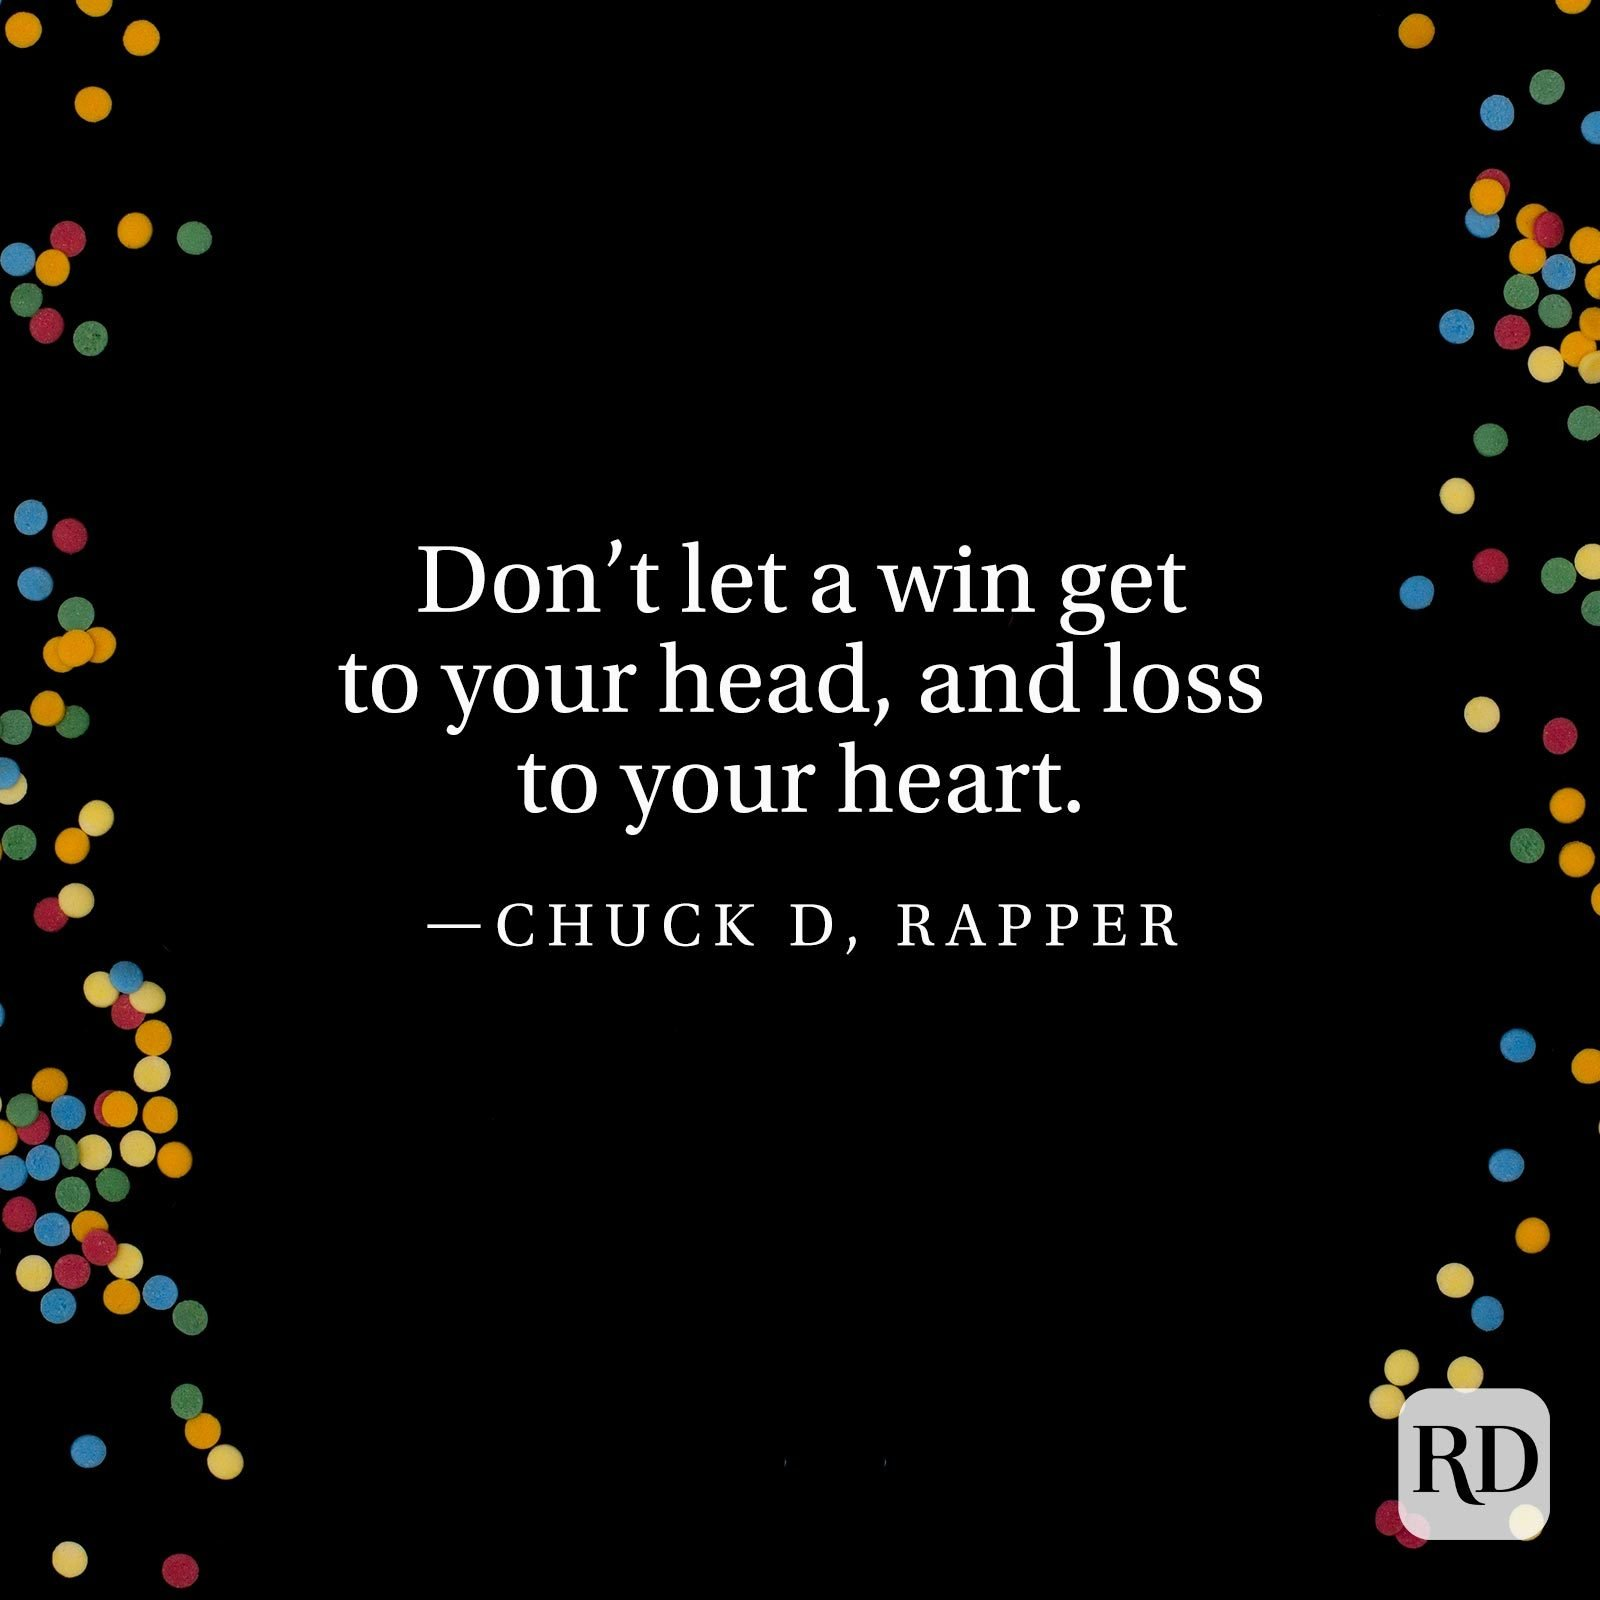 """Don't let a win get to your head, and loss to your heart."" —Chuck D, rapper"